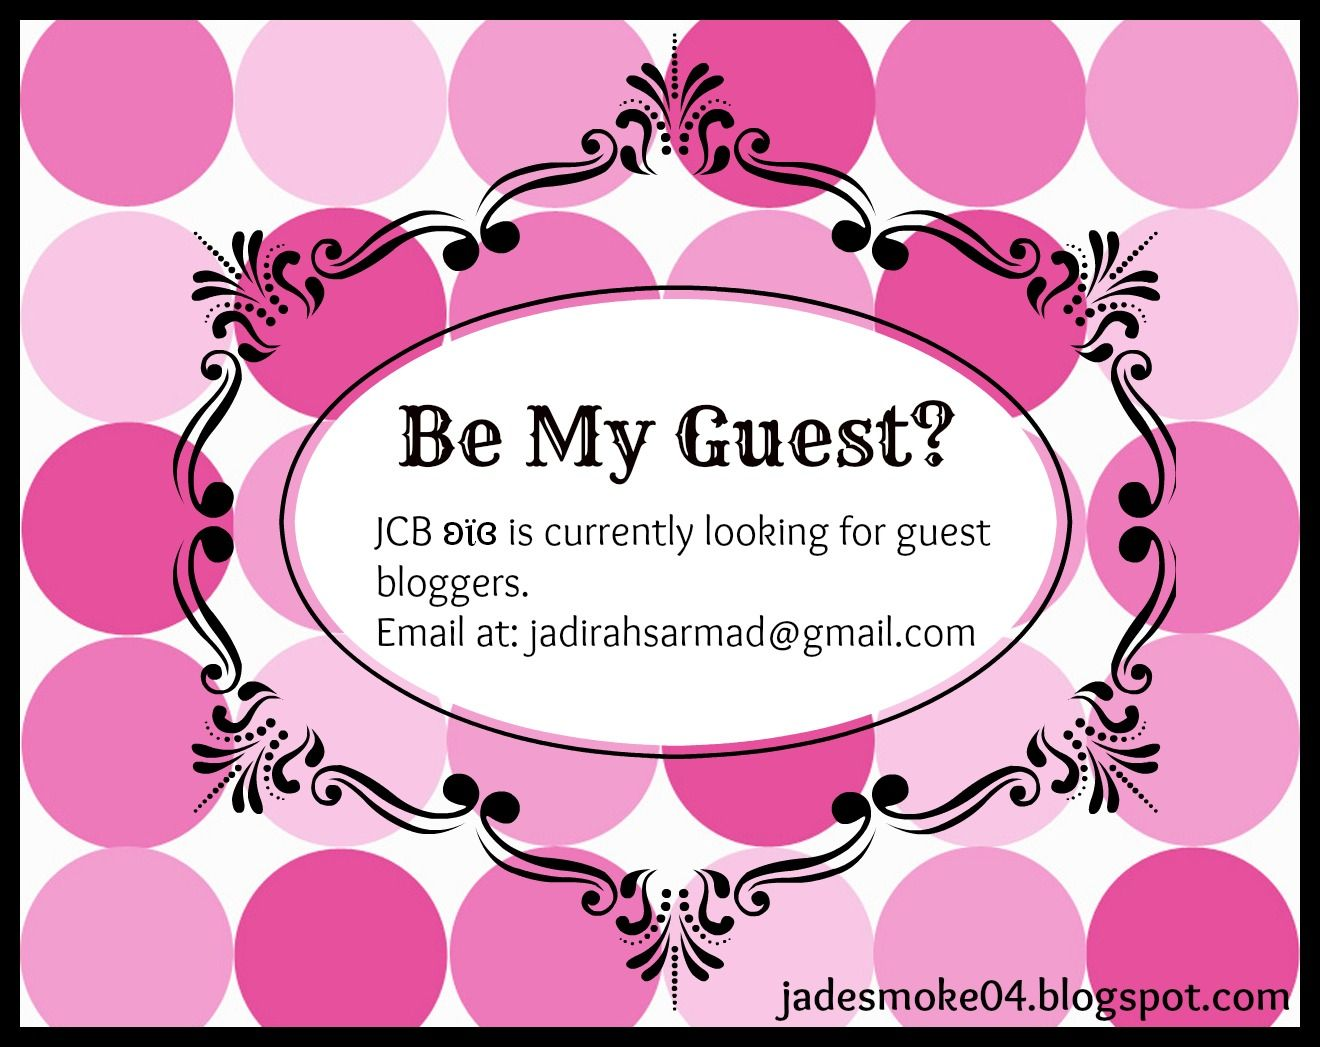 Note that you can only cover beauty, fashion, books, music, food, DIYs-&-Crafts or blog tips in your guest post on JCB ʚϊɞ. http://jadesmoke04.blogspot.com/